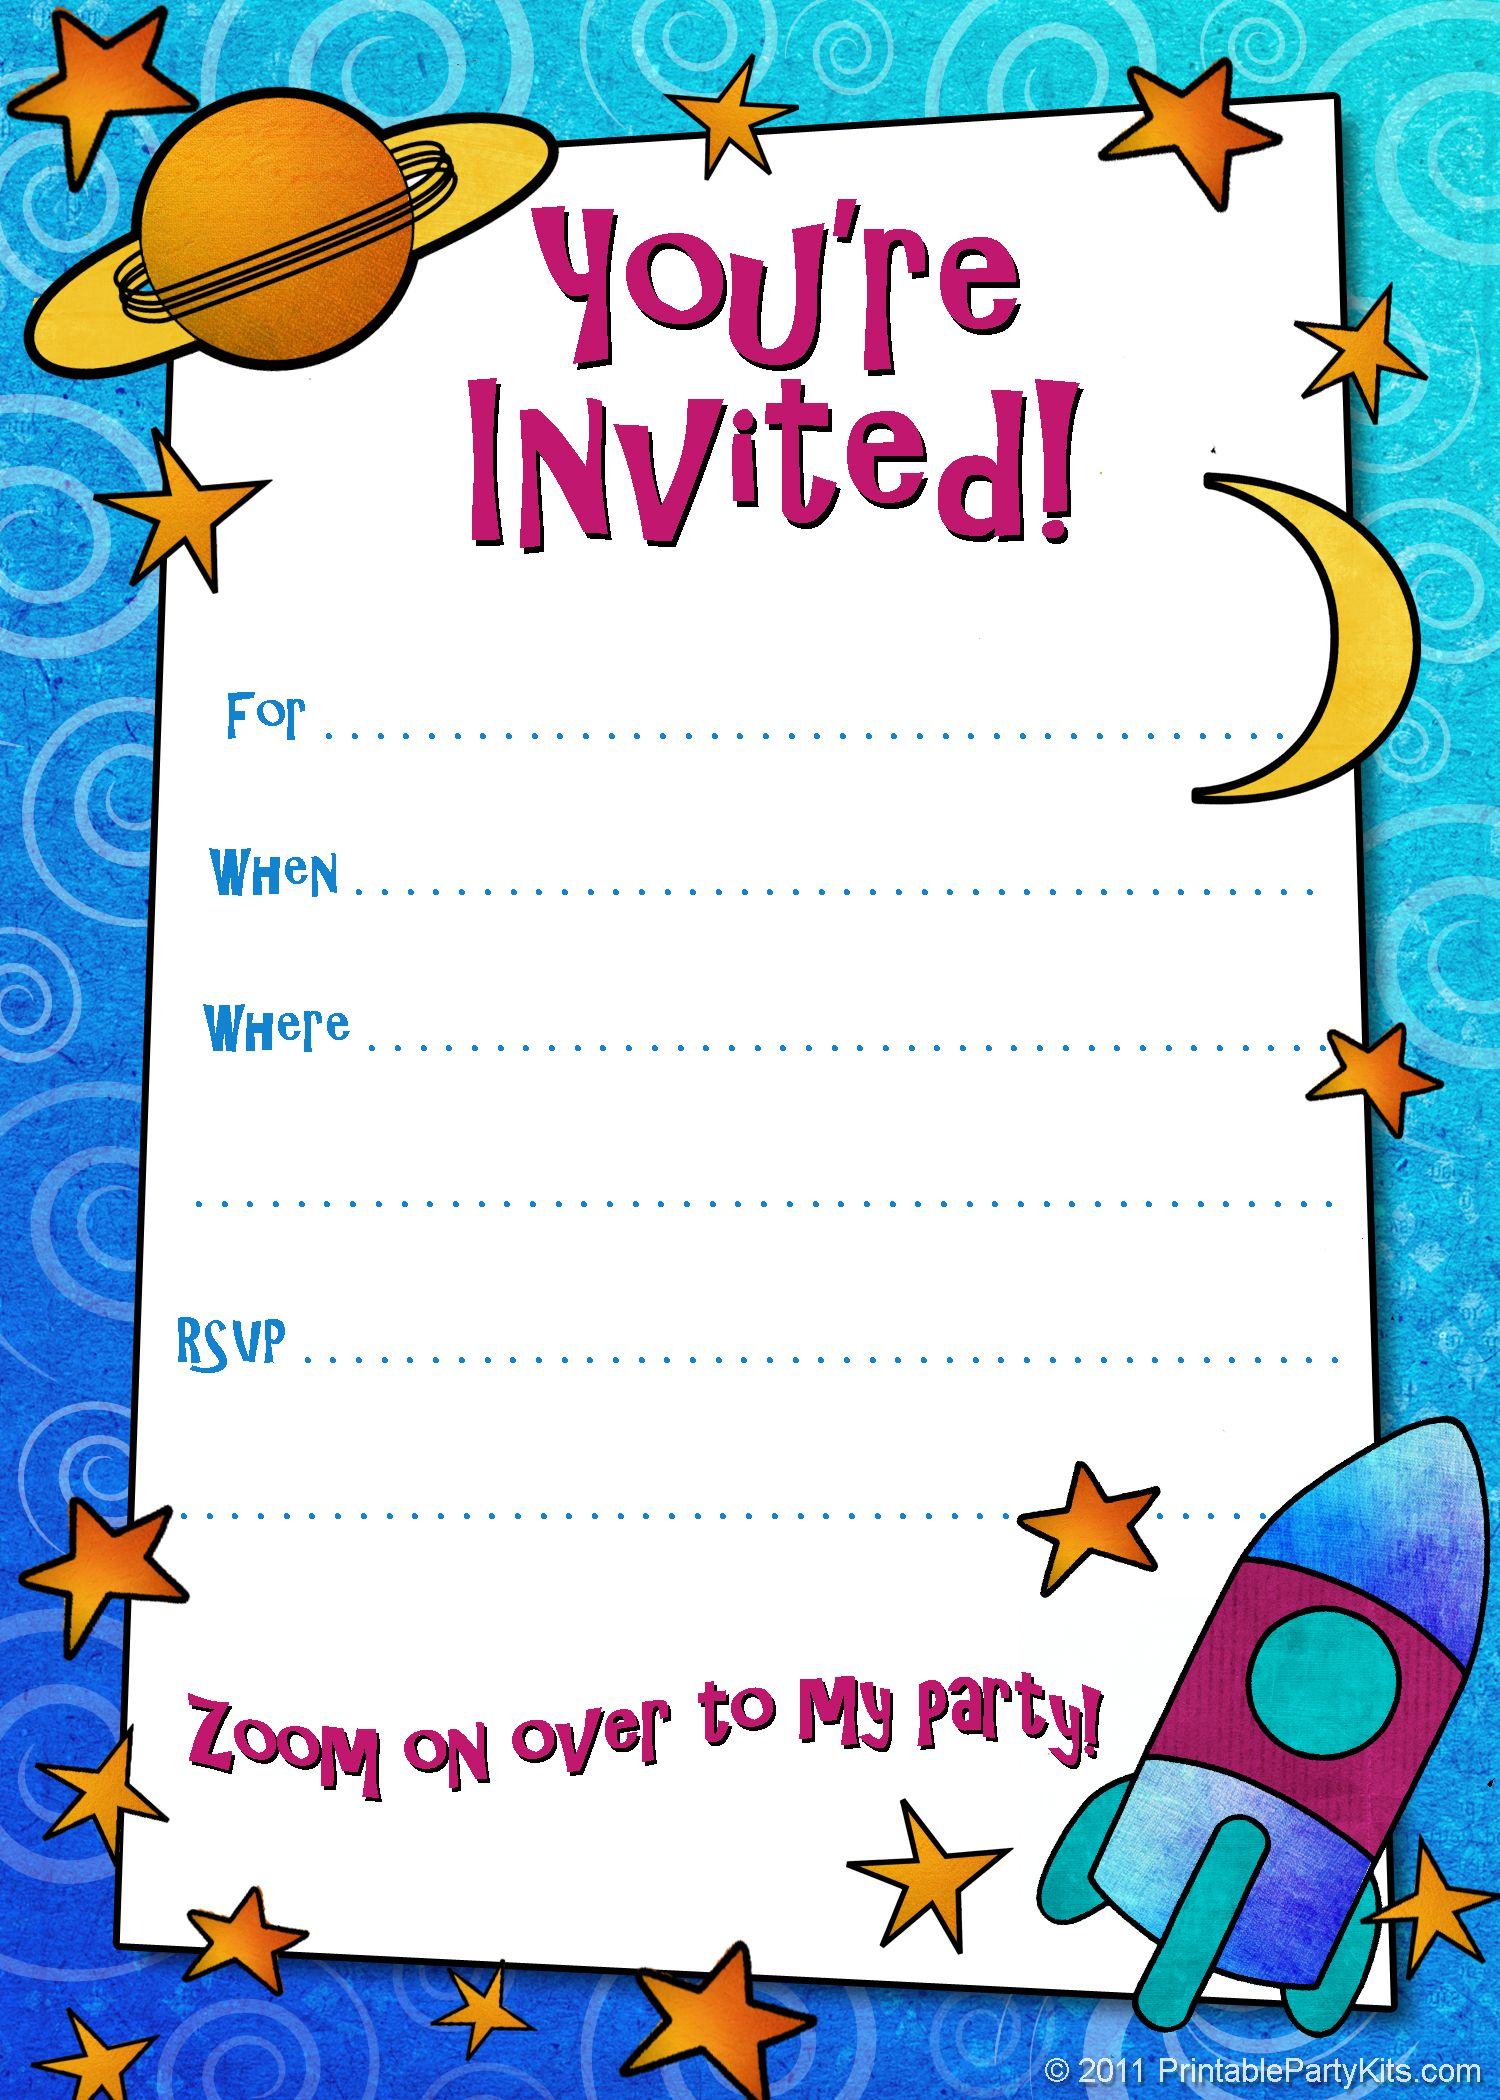 Printable kids invitations northurthwall printable kids invitations stopboris